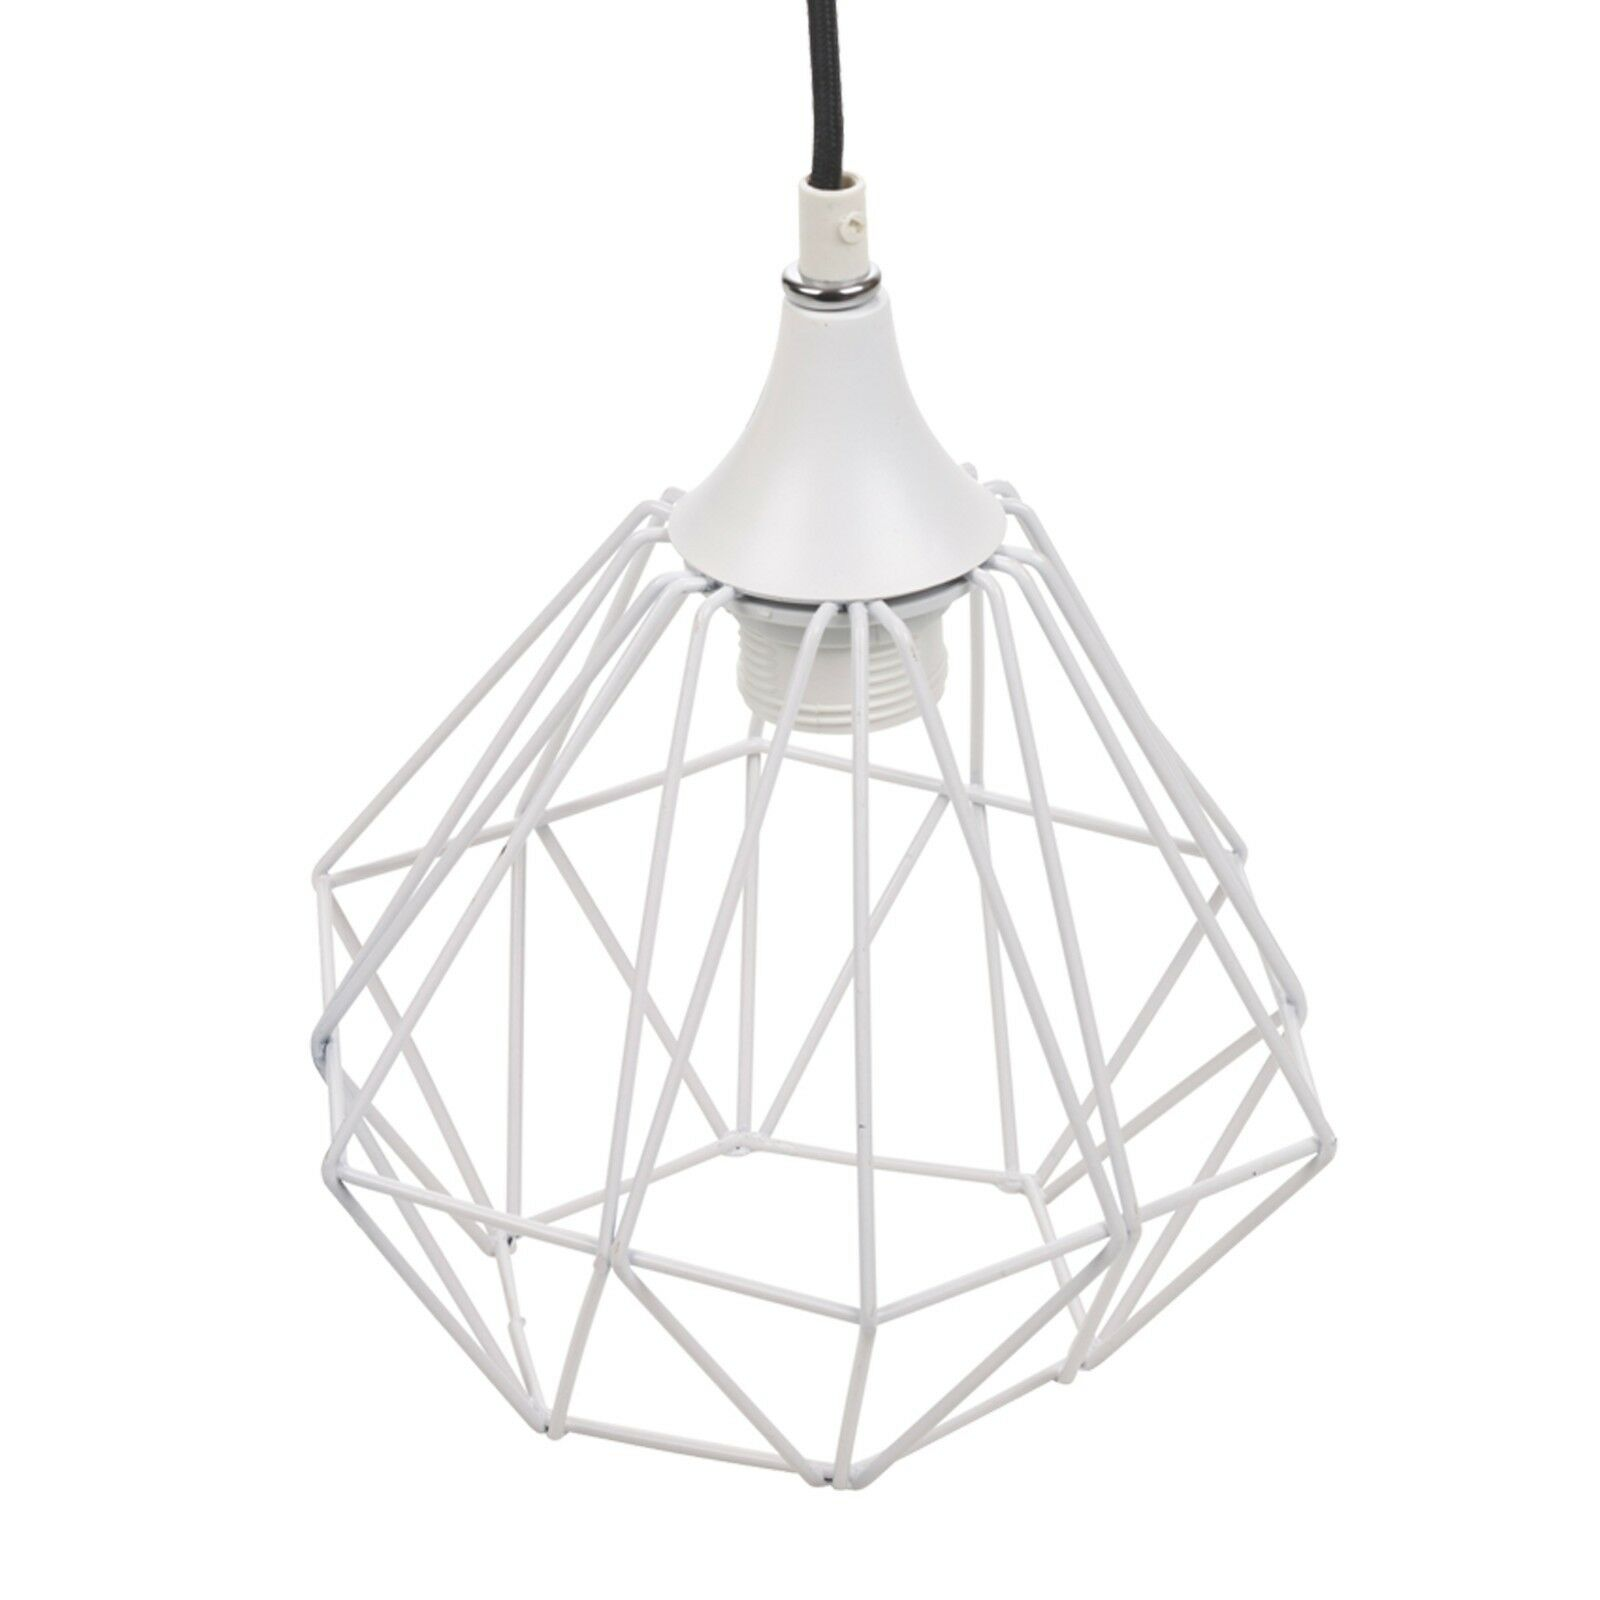 Modern White Geometric Metal Wire Hanging Ceiling Light